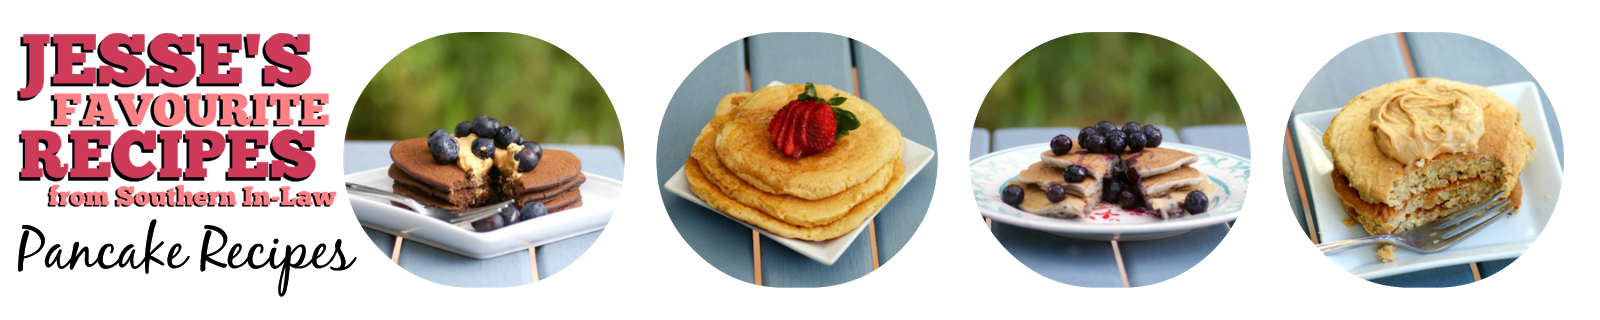 Healthy Pancake Recipes - Low fat, gluten free, sugar free